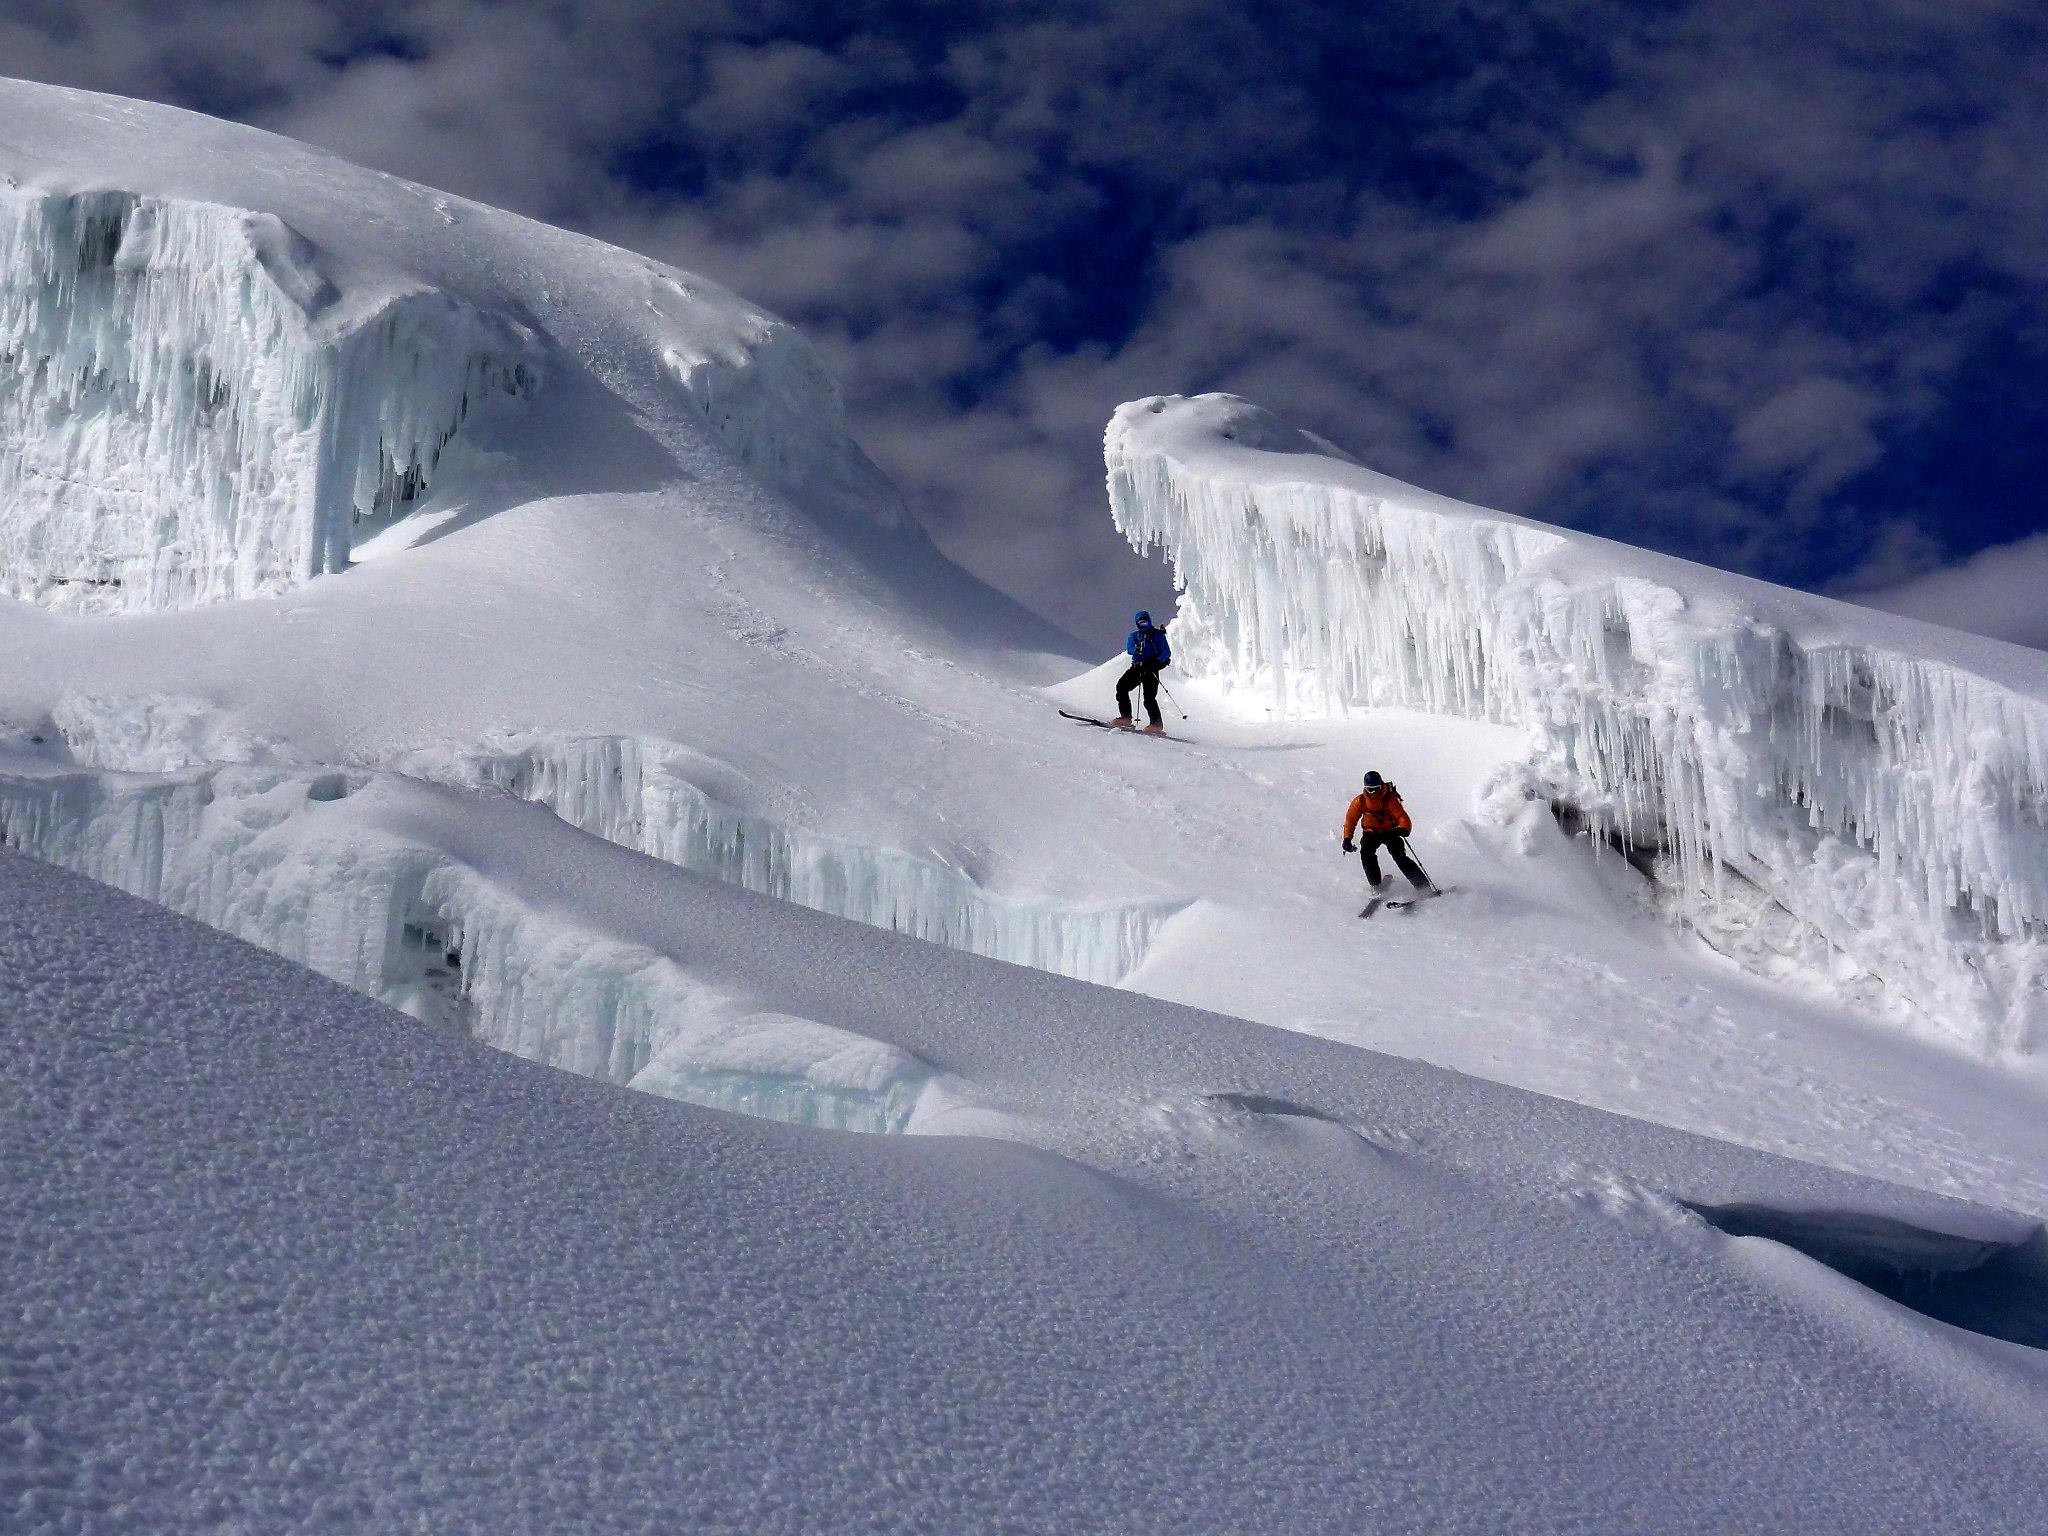 Skiing-Crevasses-on-Cotopaxi-2